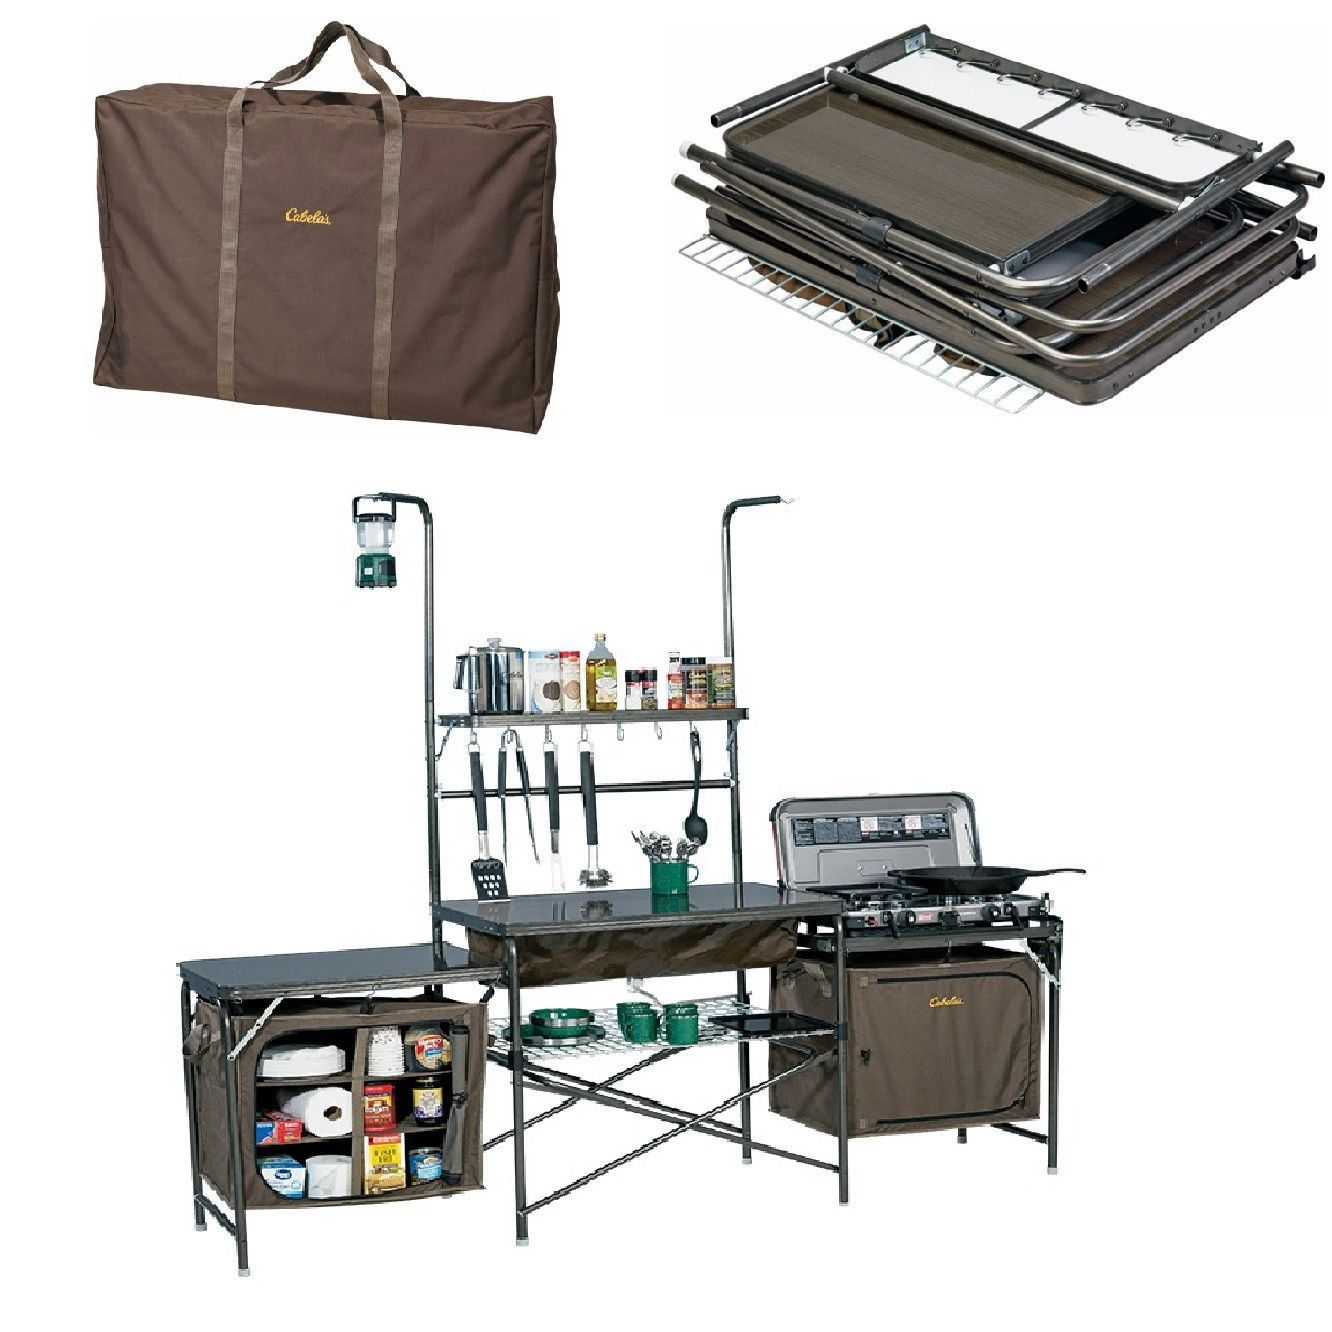 Outside Camping Kitchen Ideas on outside outdoor kitchen, avanti mini kitchen, outside rv kitchen, camp kitchen, moveable kitchen, outside house kitchen, cabela's outdoor kitchen, mobile outdoor kitchen, outside bbq kitchen, portable kitchen,